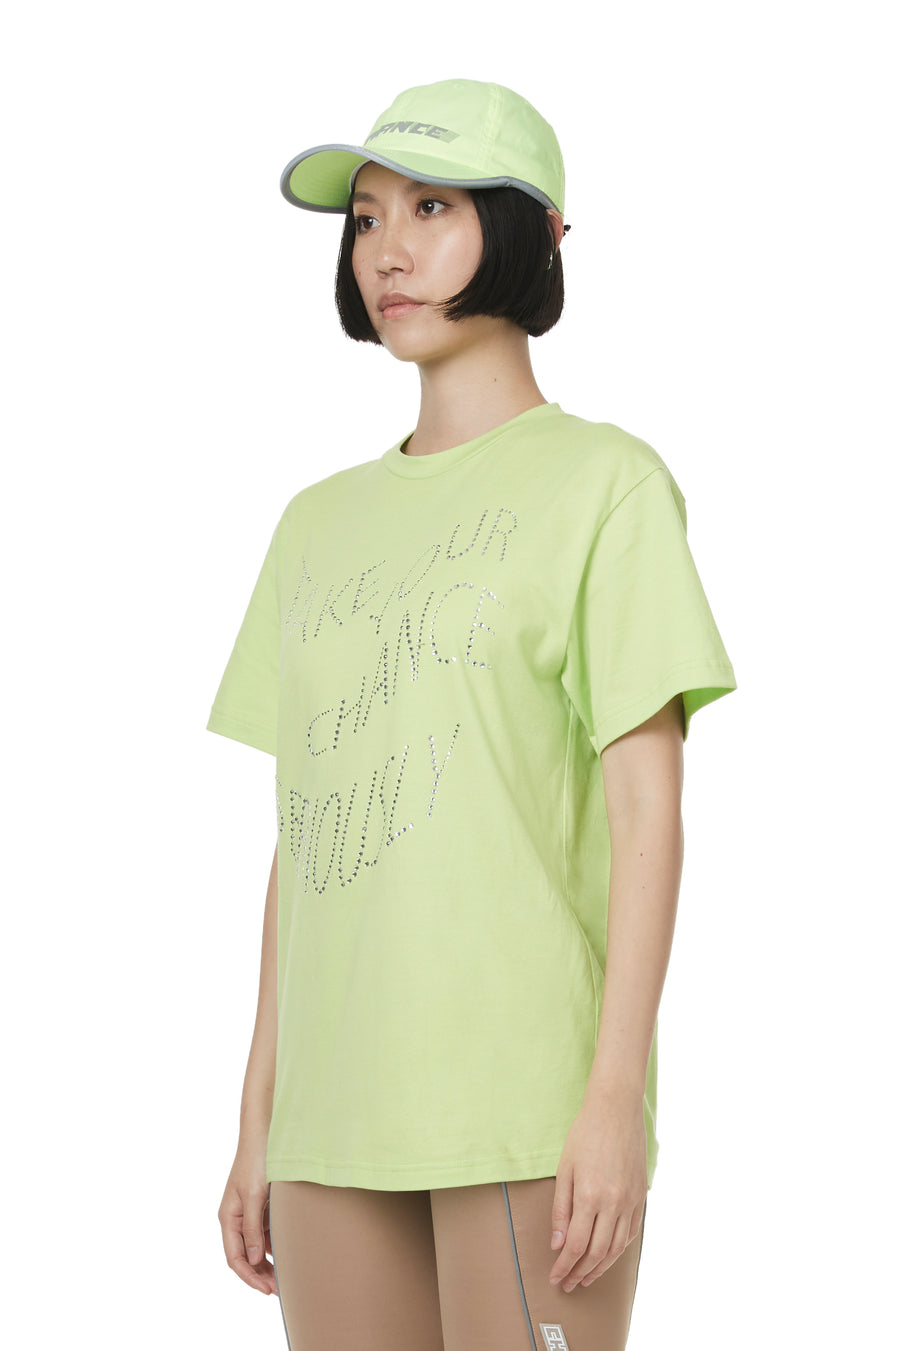 Safety Green Take Your Chance Seriously T-shirt